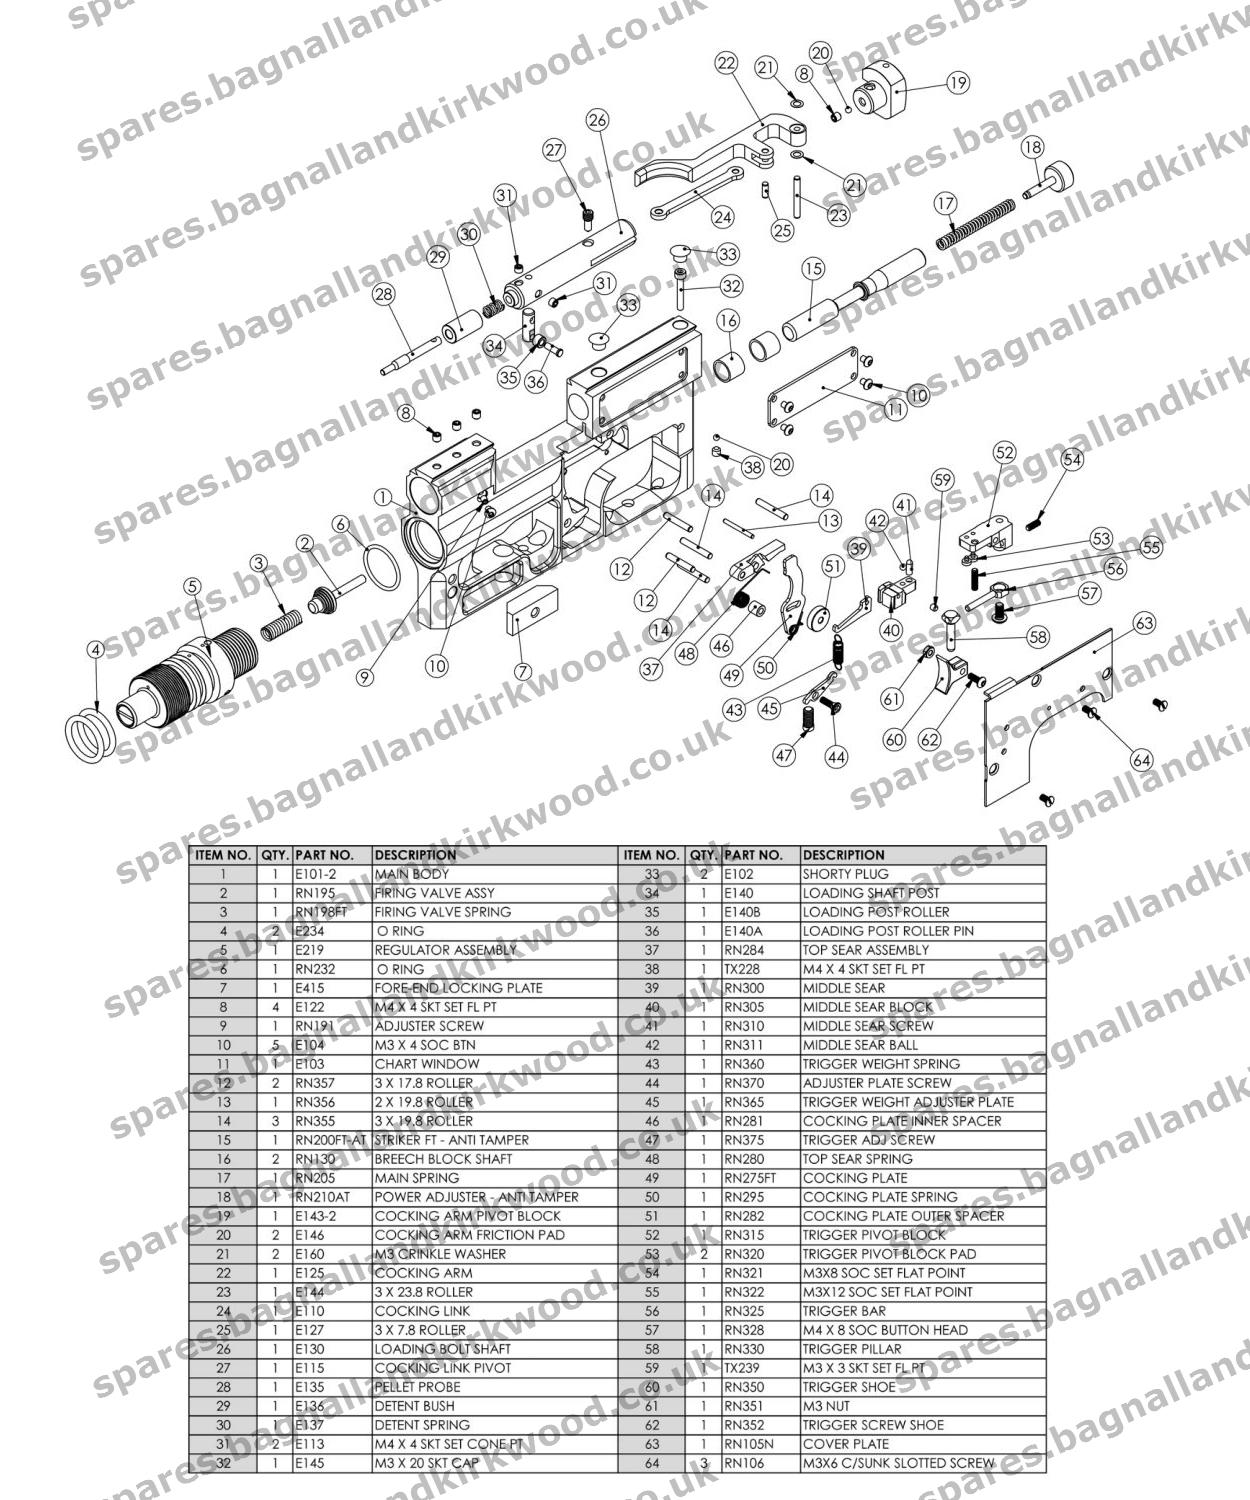 93 Gm Alternator Wire Diagram moreover Wiring Diagram 22r 84 A 200854 together with Air Arms Ev2 further Rectifier Regulator Wiring Diagram moreover Briggs And Stratton Vanguard 16 Hp Wiring Diagram. on charging diagram